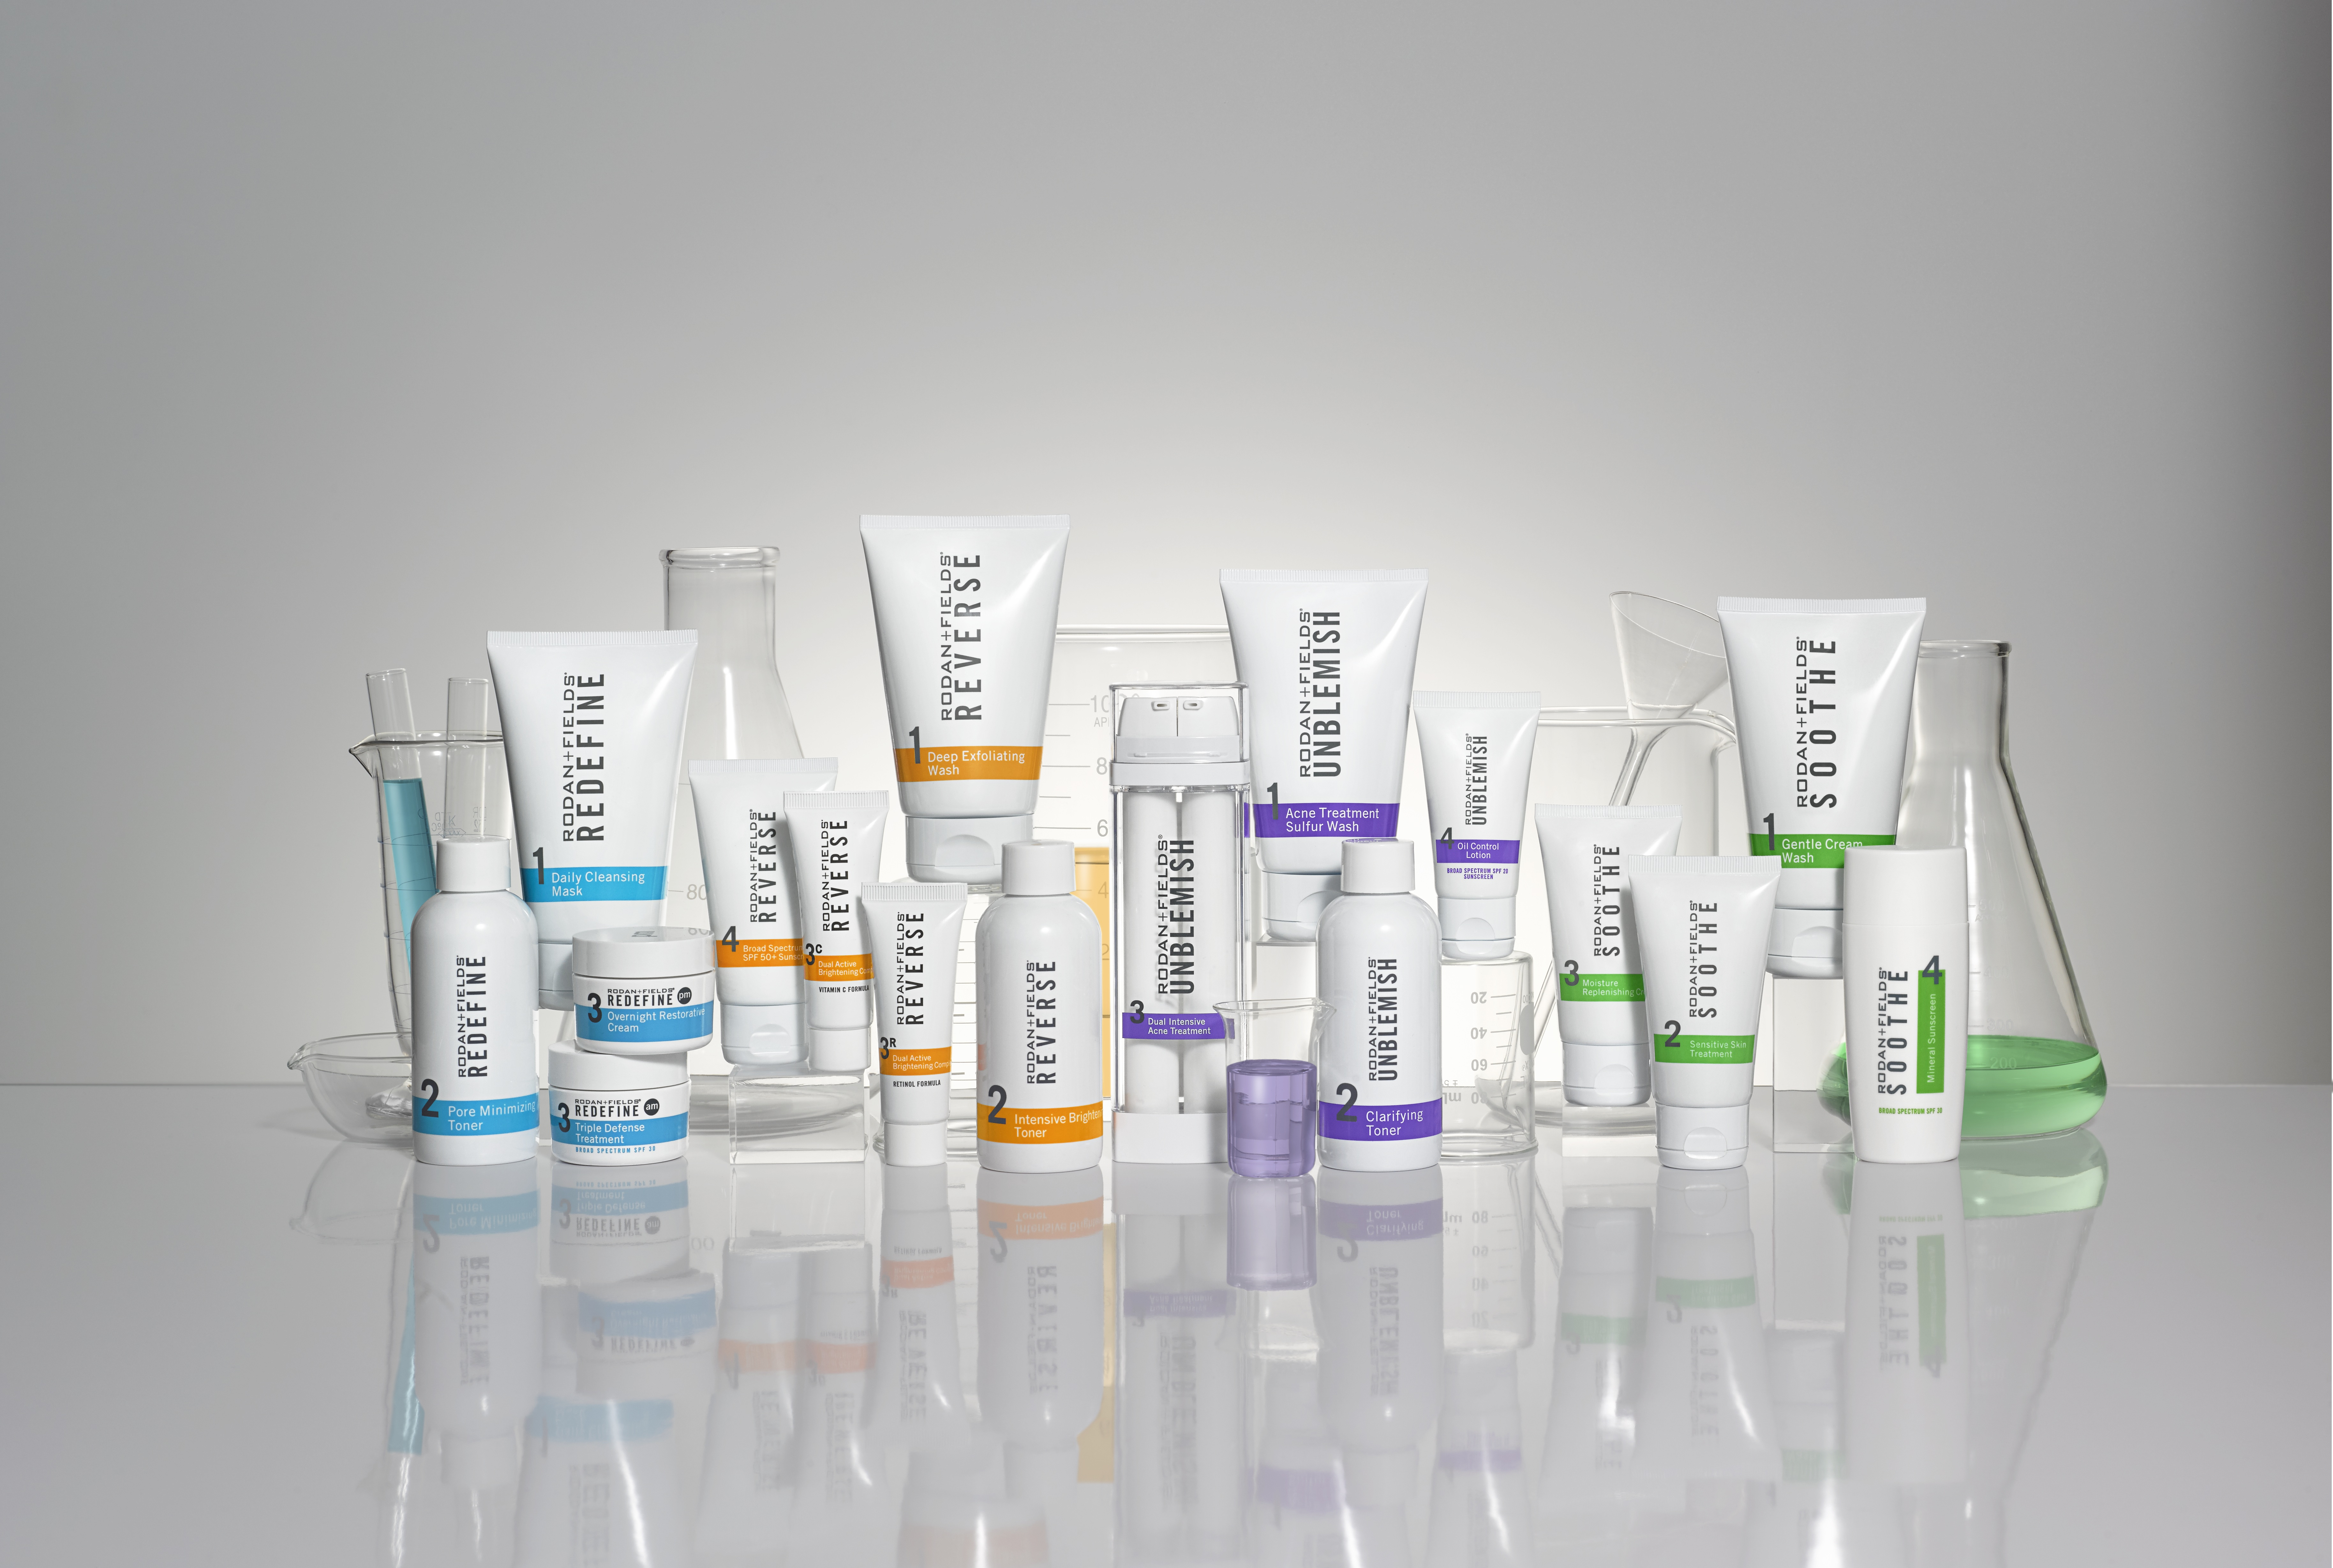 Rodan And Fields Christmas 2020 Rodan + Fields Said to Top Skin Care Market With $1.12 Billion in